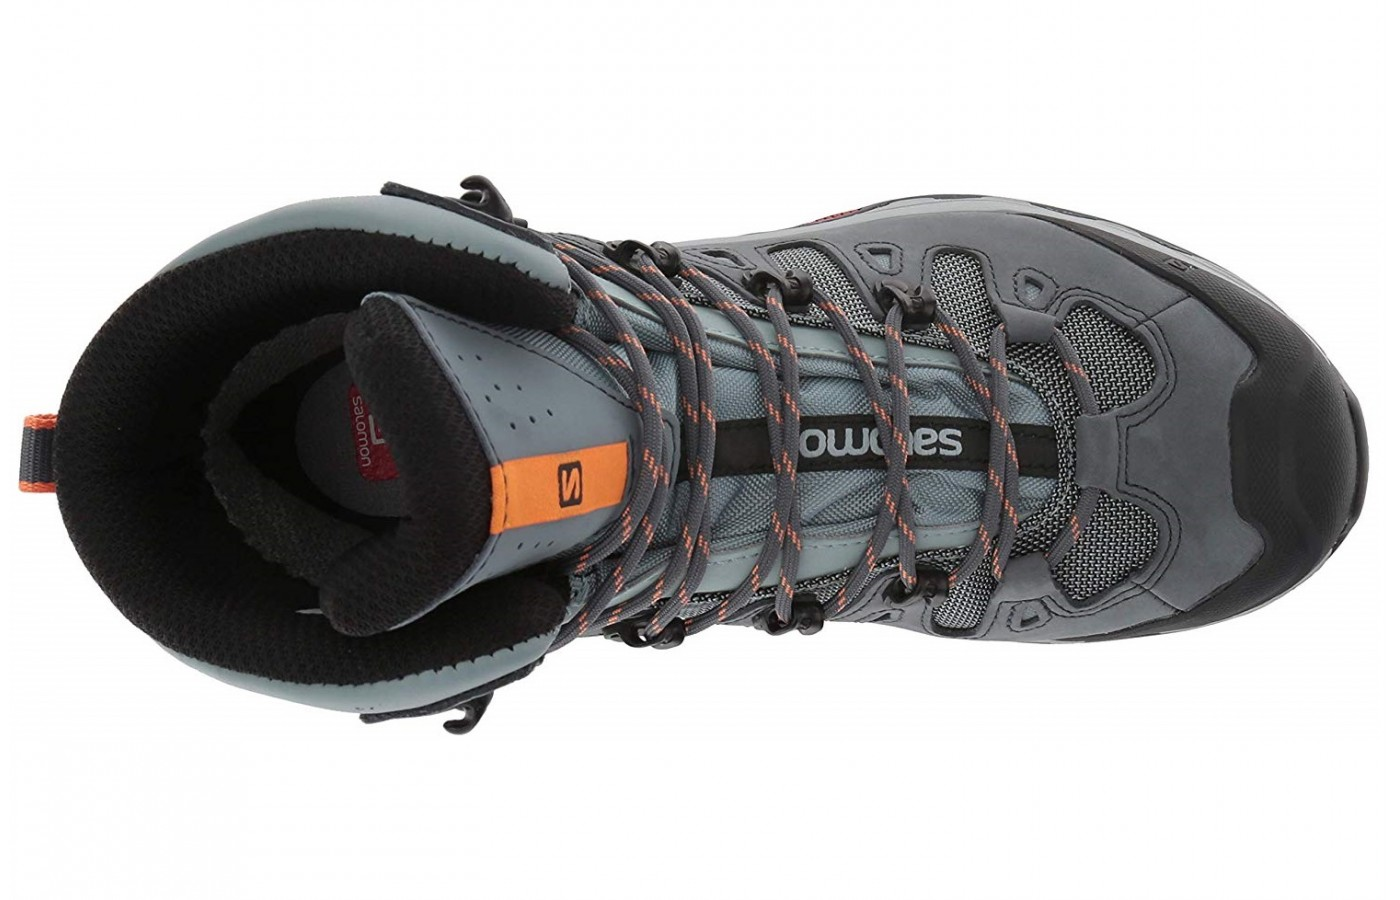 The Salomon Quest 4D 3 GTX offers a 6.5